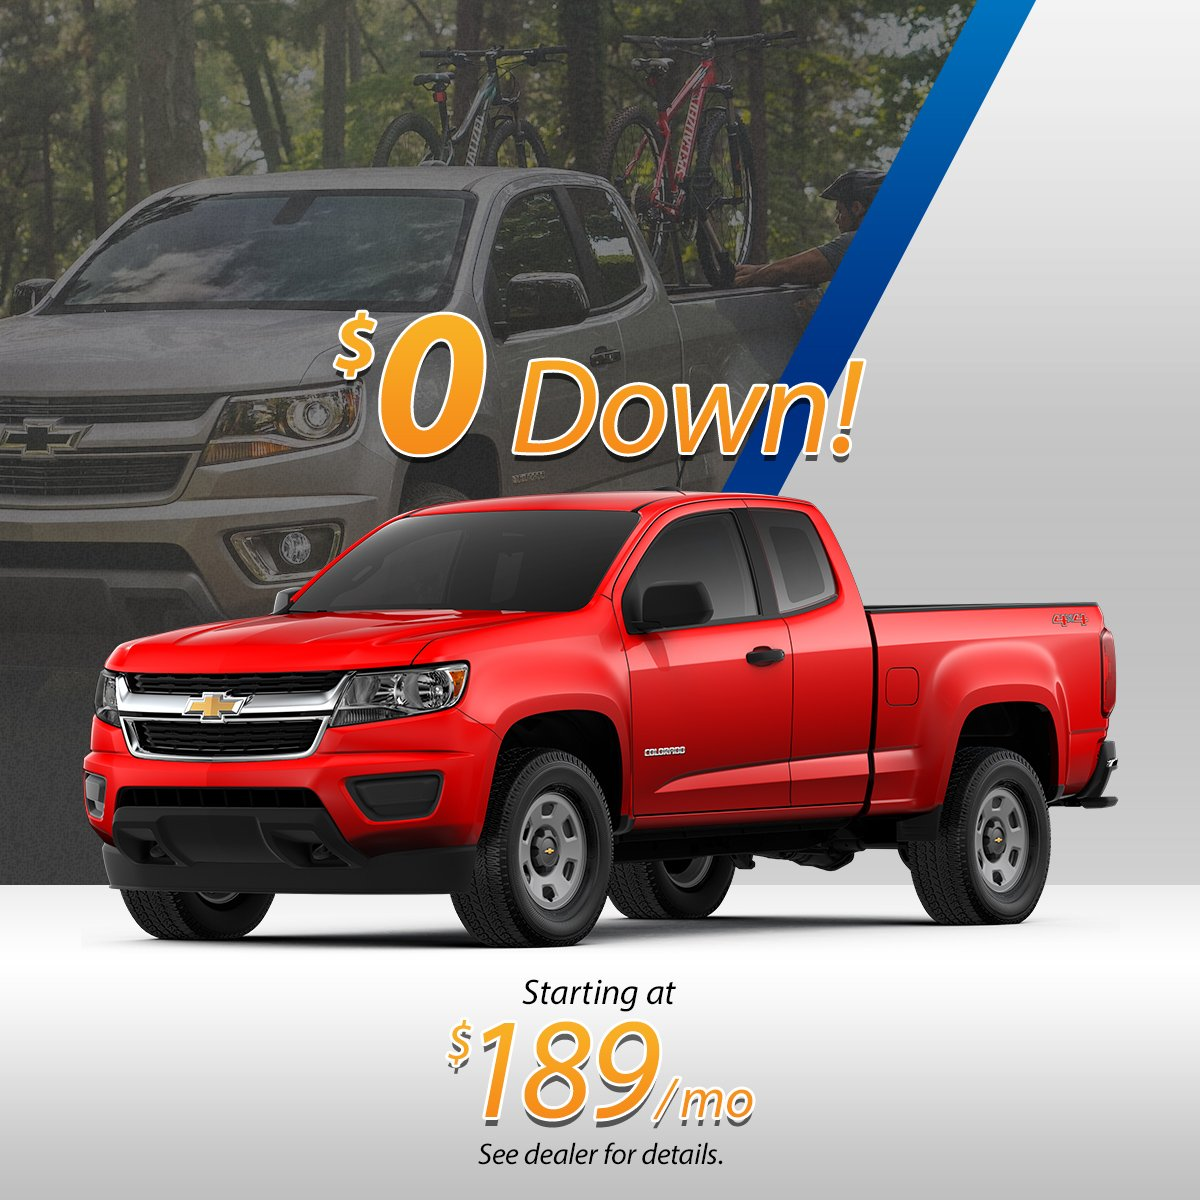 Graff Chevrolet Bay City >> Graff Chevrolet On Twitter Lease The All New 2018 Chevy